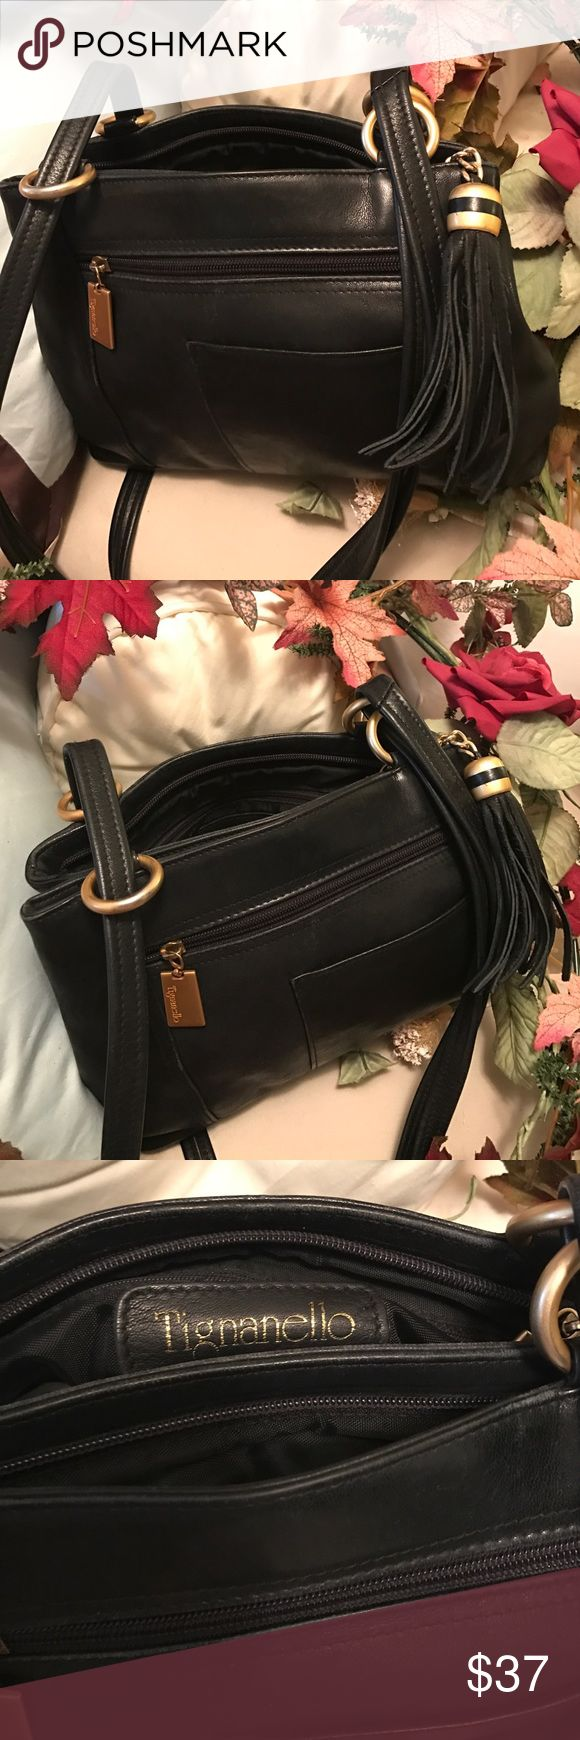 Tignanello Vintage All Leather Handbag Very nice quality, preowned, cared for, very clean vintage black leather shoulder bag. Matte Gold Hardware. Very Good condition . Excellent medium sized bag for very small investment. Two compartments and several zipper compartments as well as exterior phone pocket.? tagnanello Bags Shoulder Bags